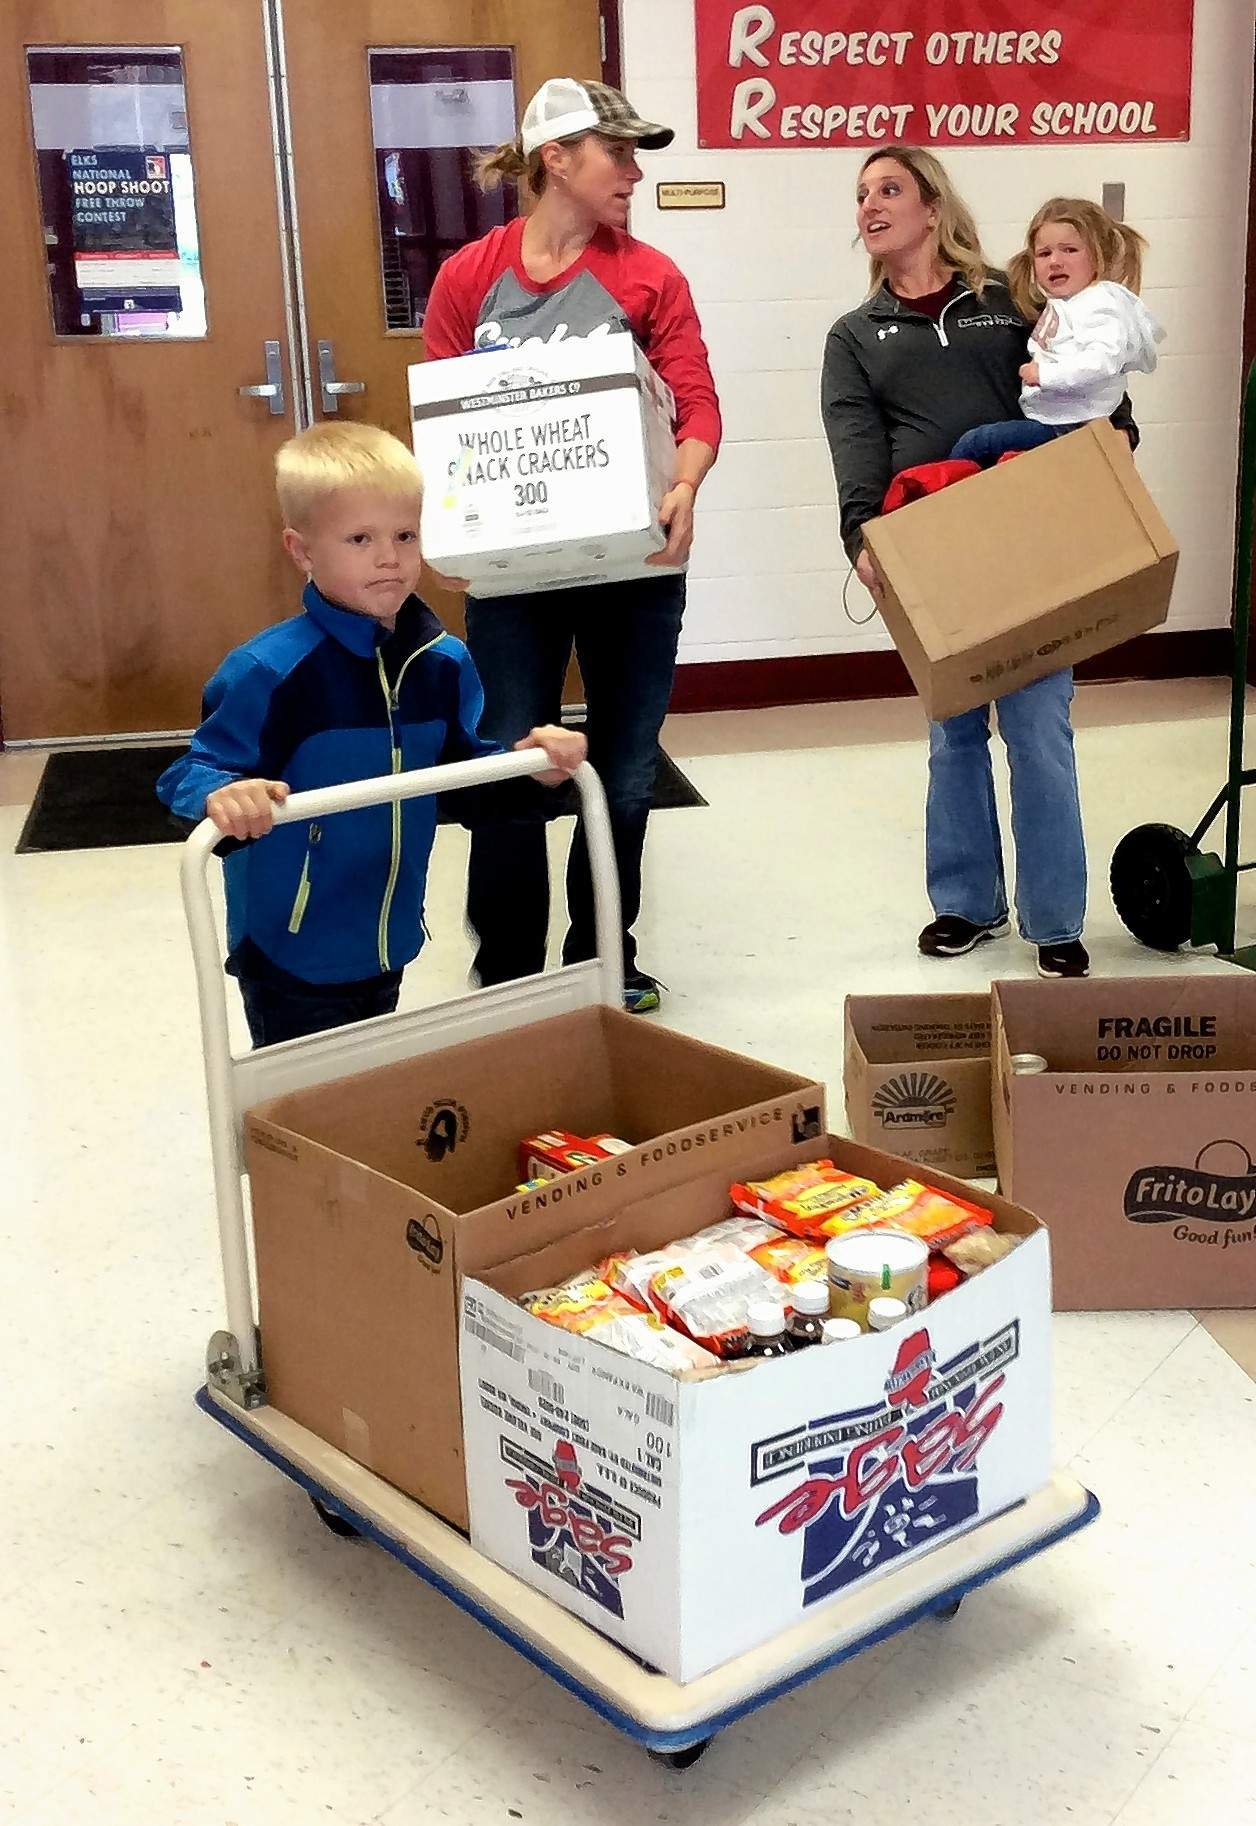 The parade of supplies is led by first grader Cade Pollastro, with a cartload of food. Following behind are moms Nykelle Pollastro and Kortni Blondi (with Ada Blondi in tow).